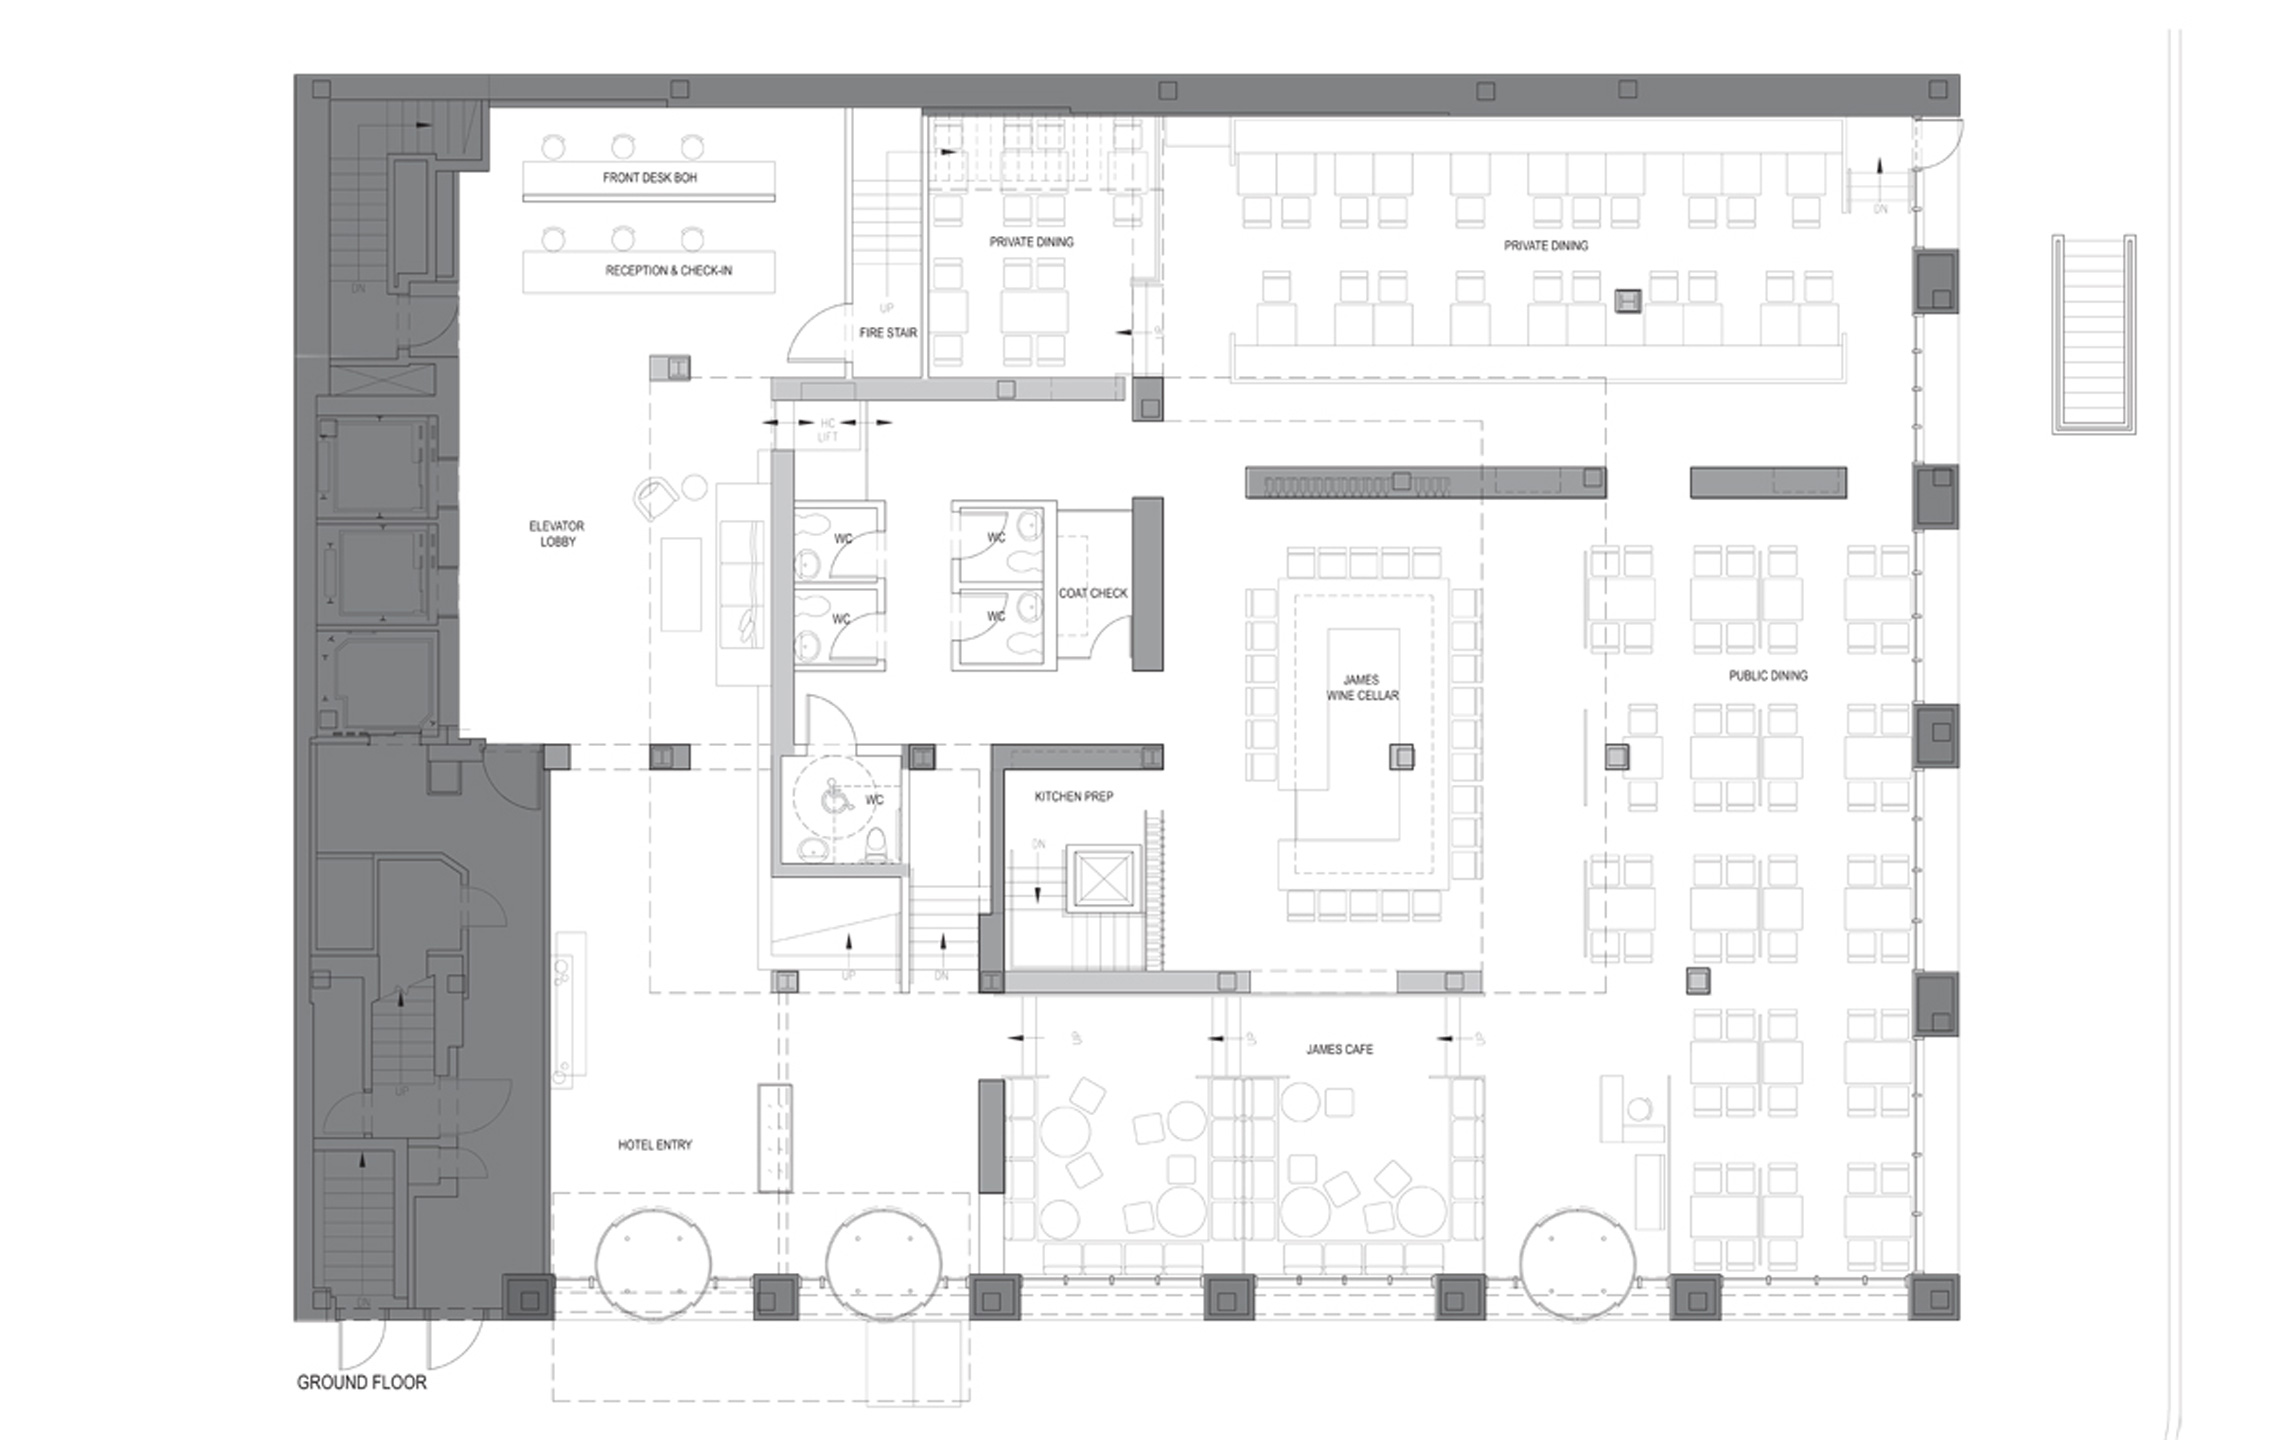 Ground Floor Plan, Lounge & Restaurant